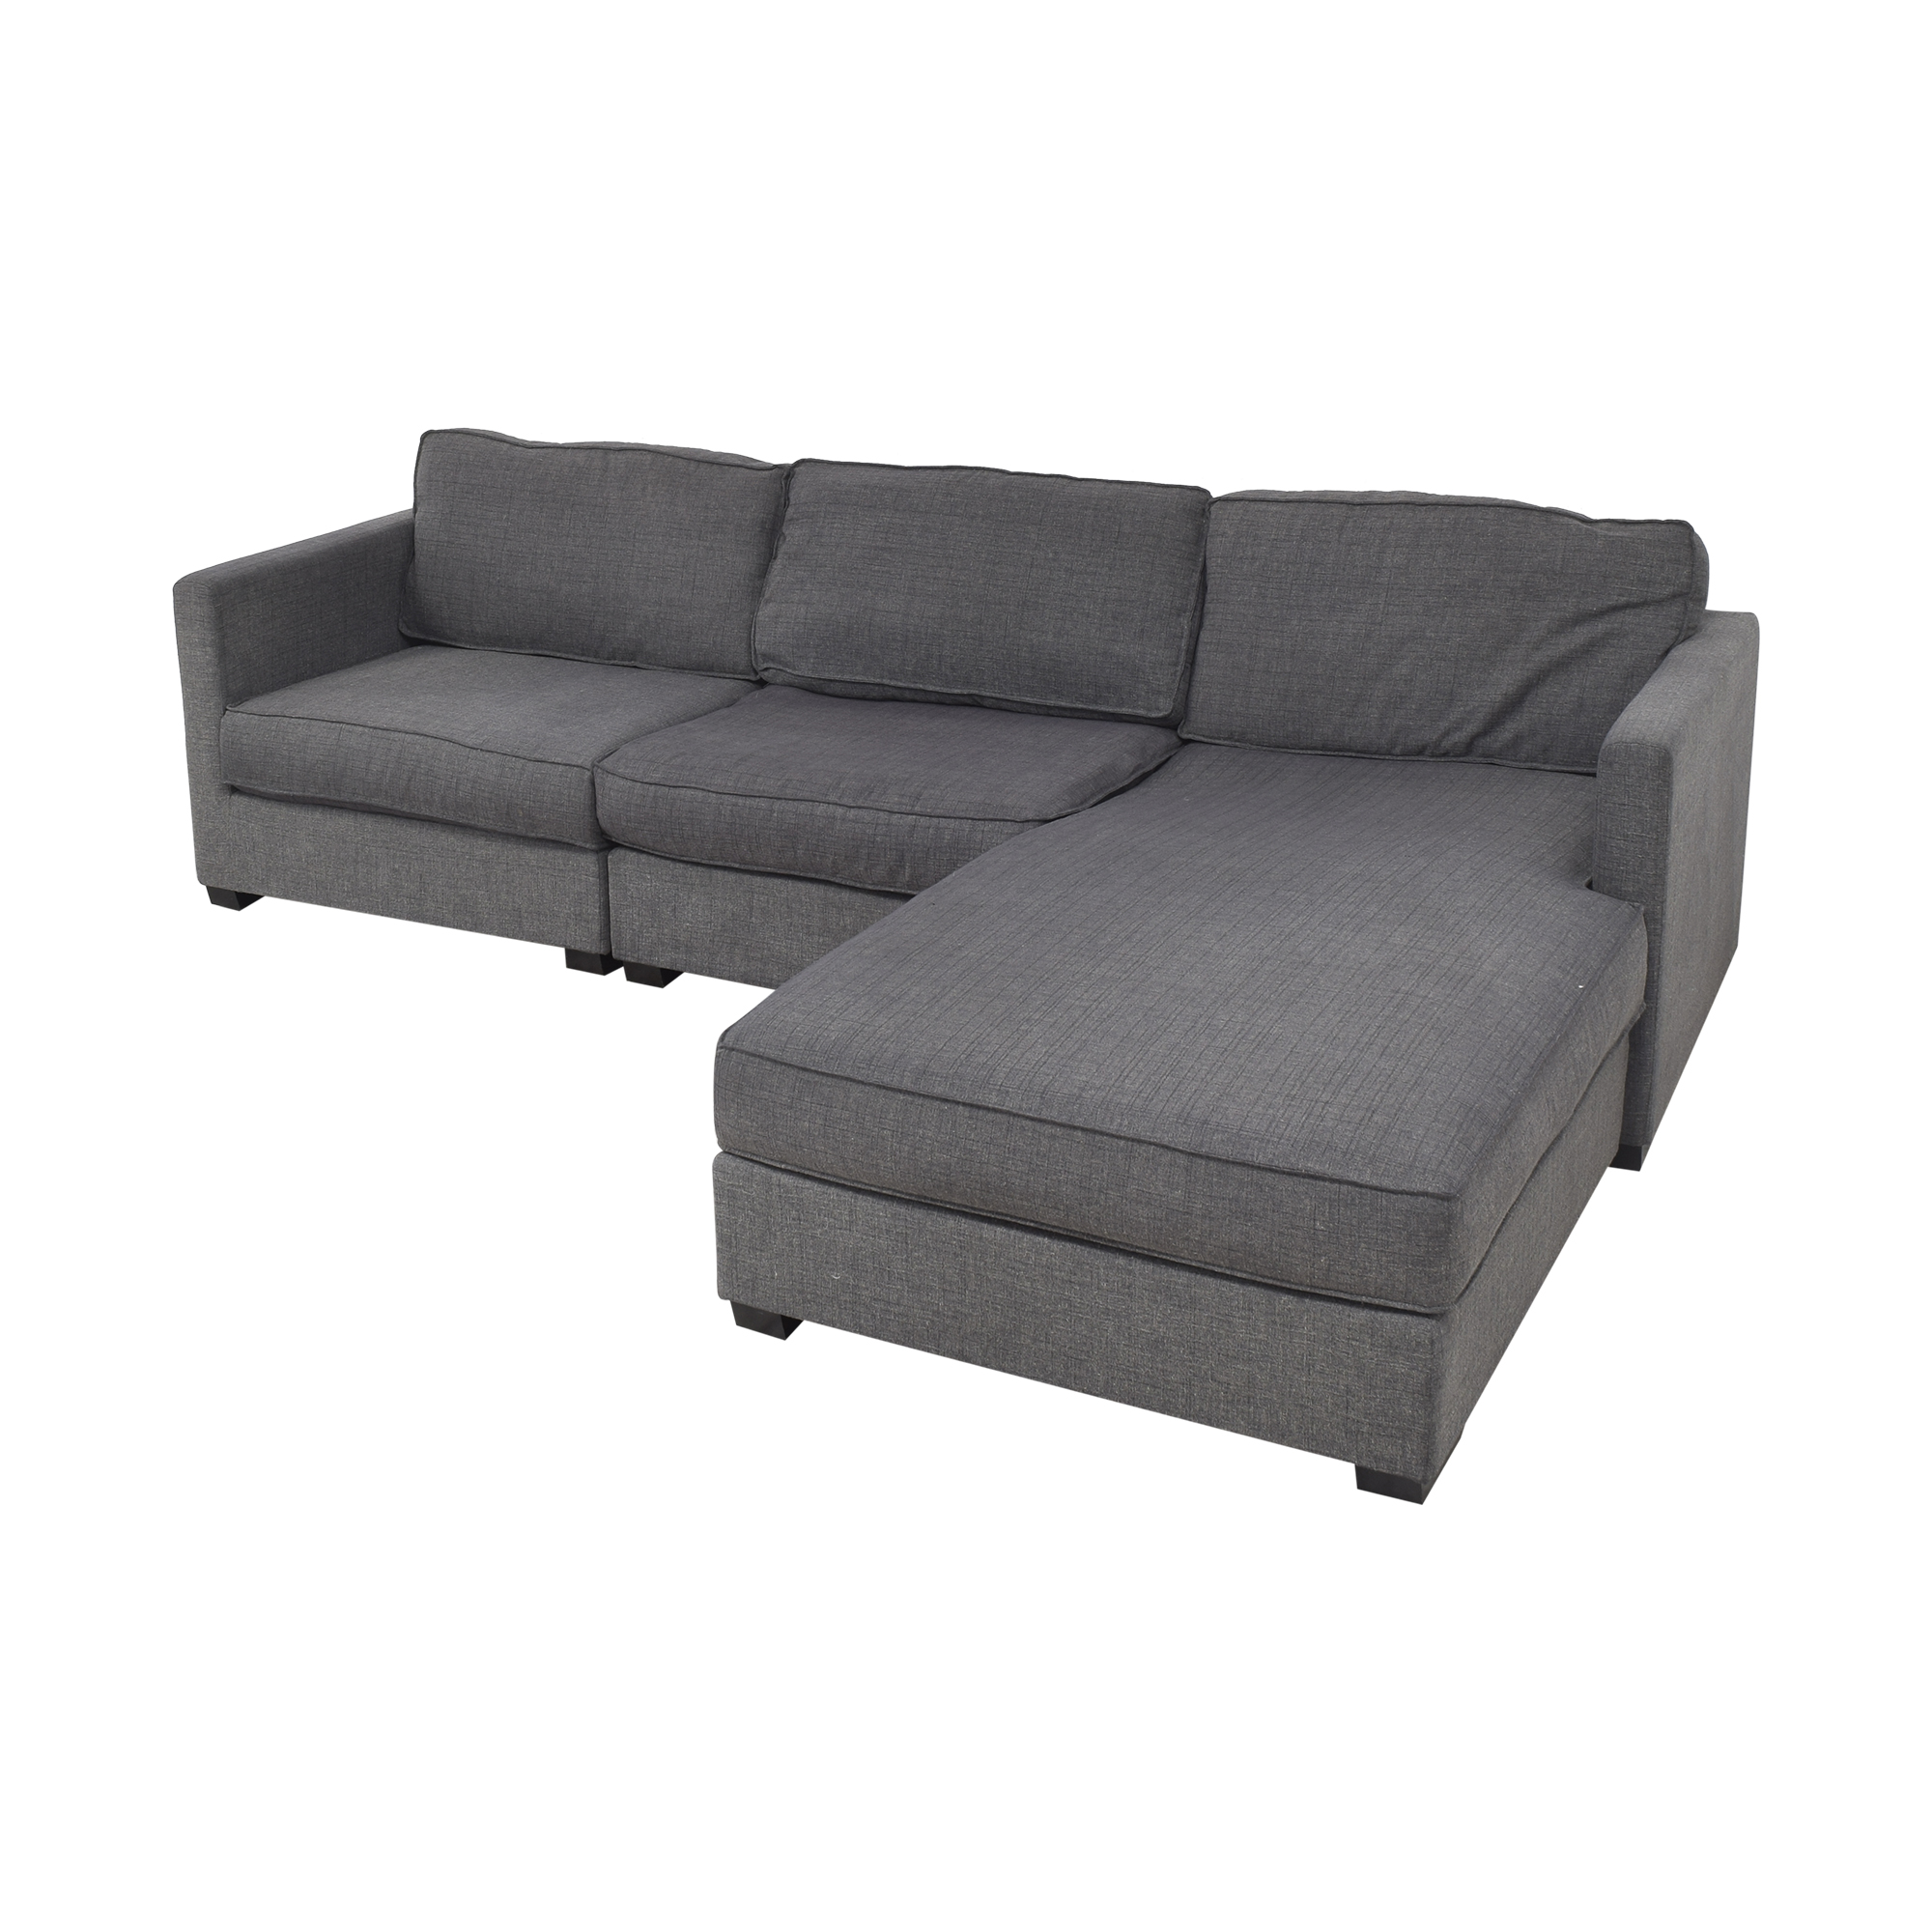 Gus Modern Parkdale Chaise Sectional Sofa sale